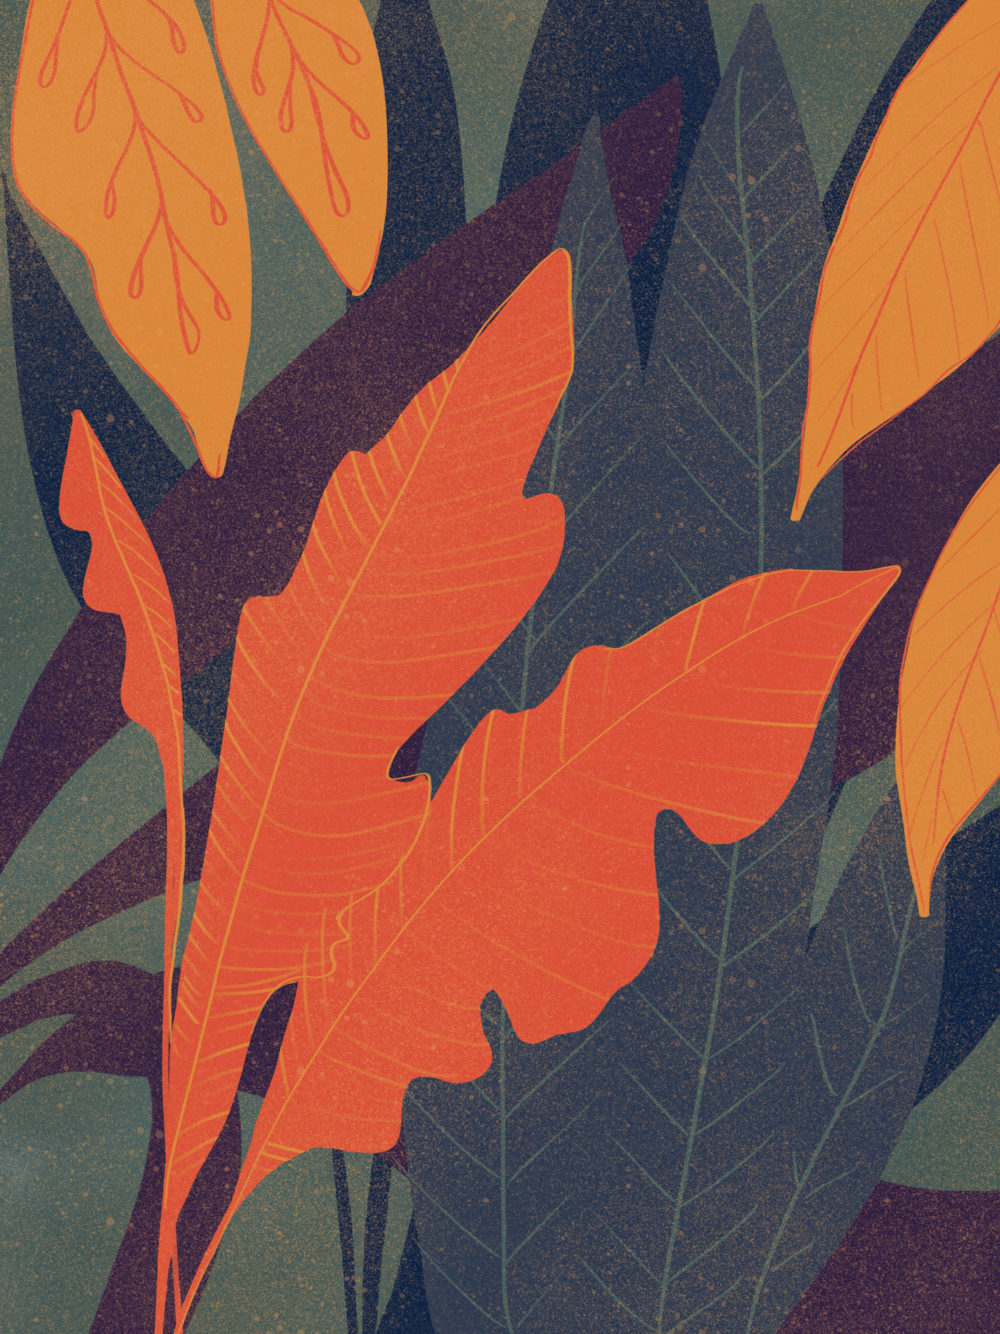 Illustration digitale de feuilles colorées